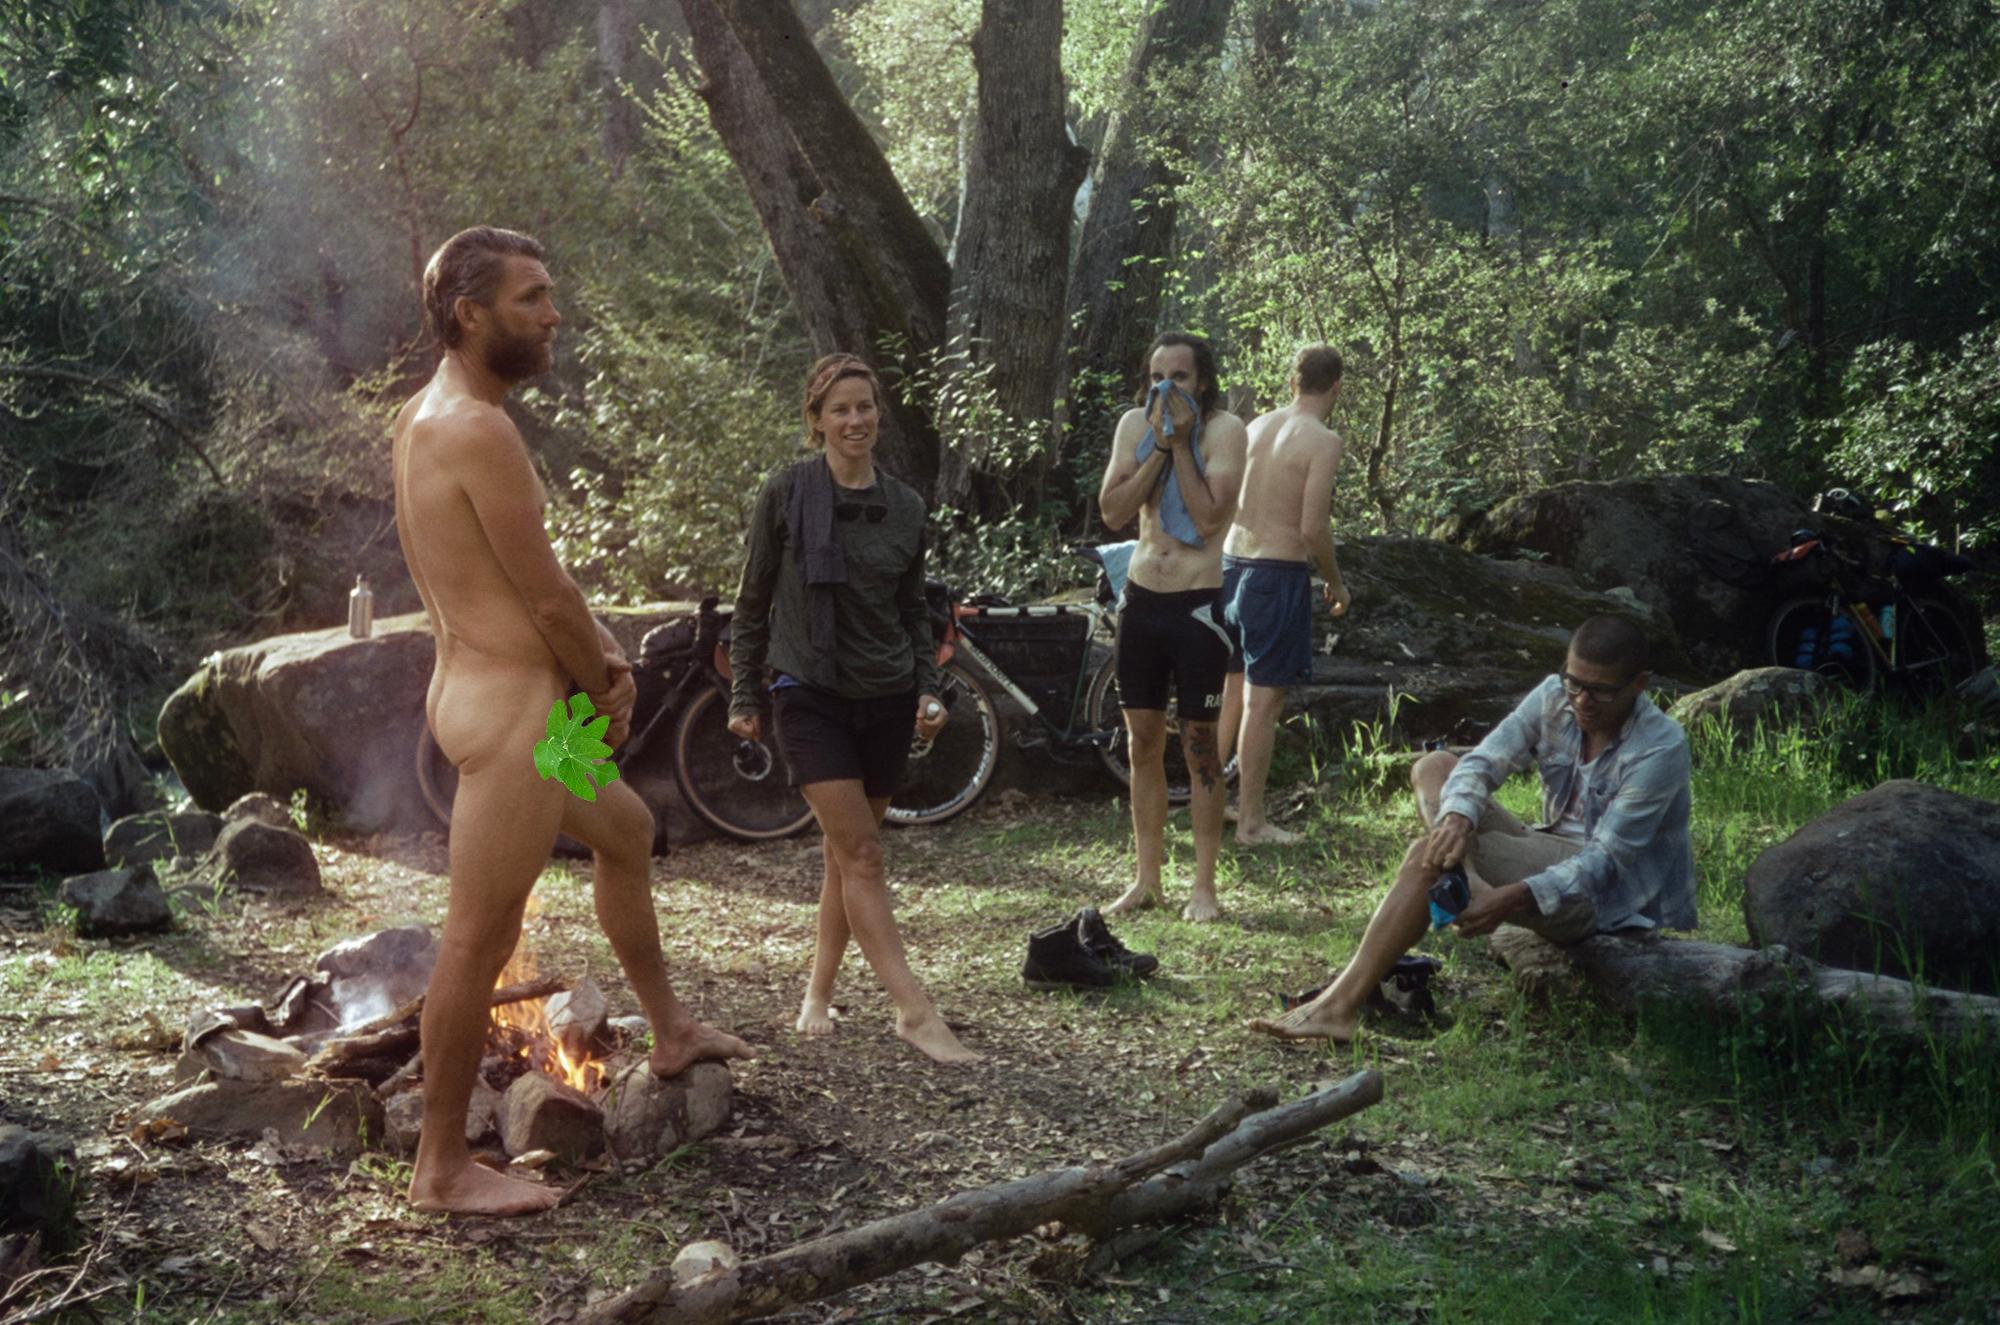 Fast Friends: Big Thoughts Through Big Sur